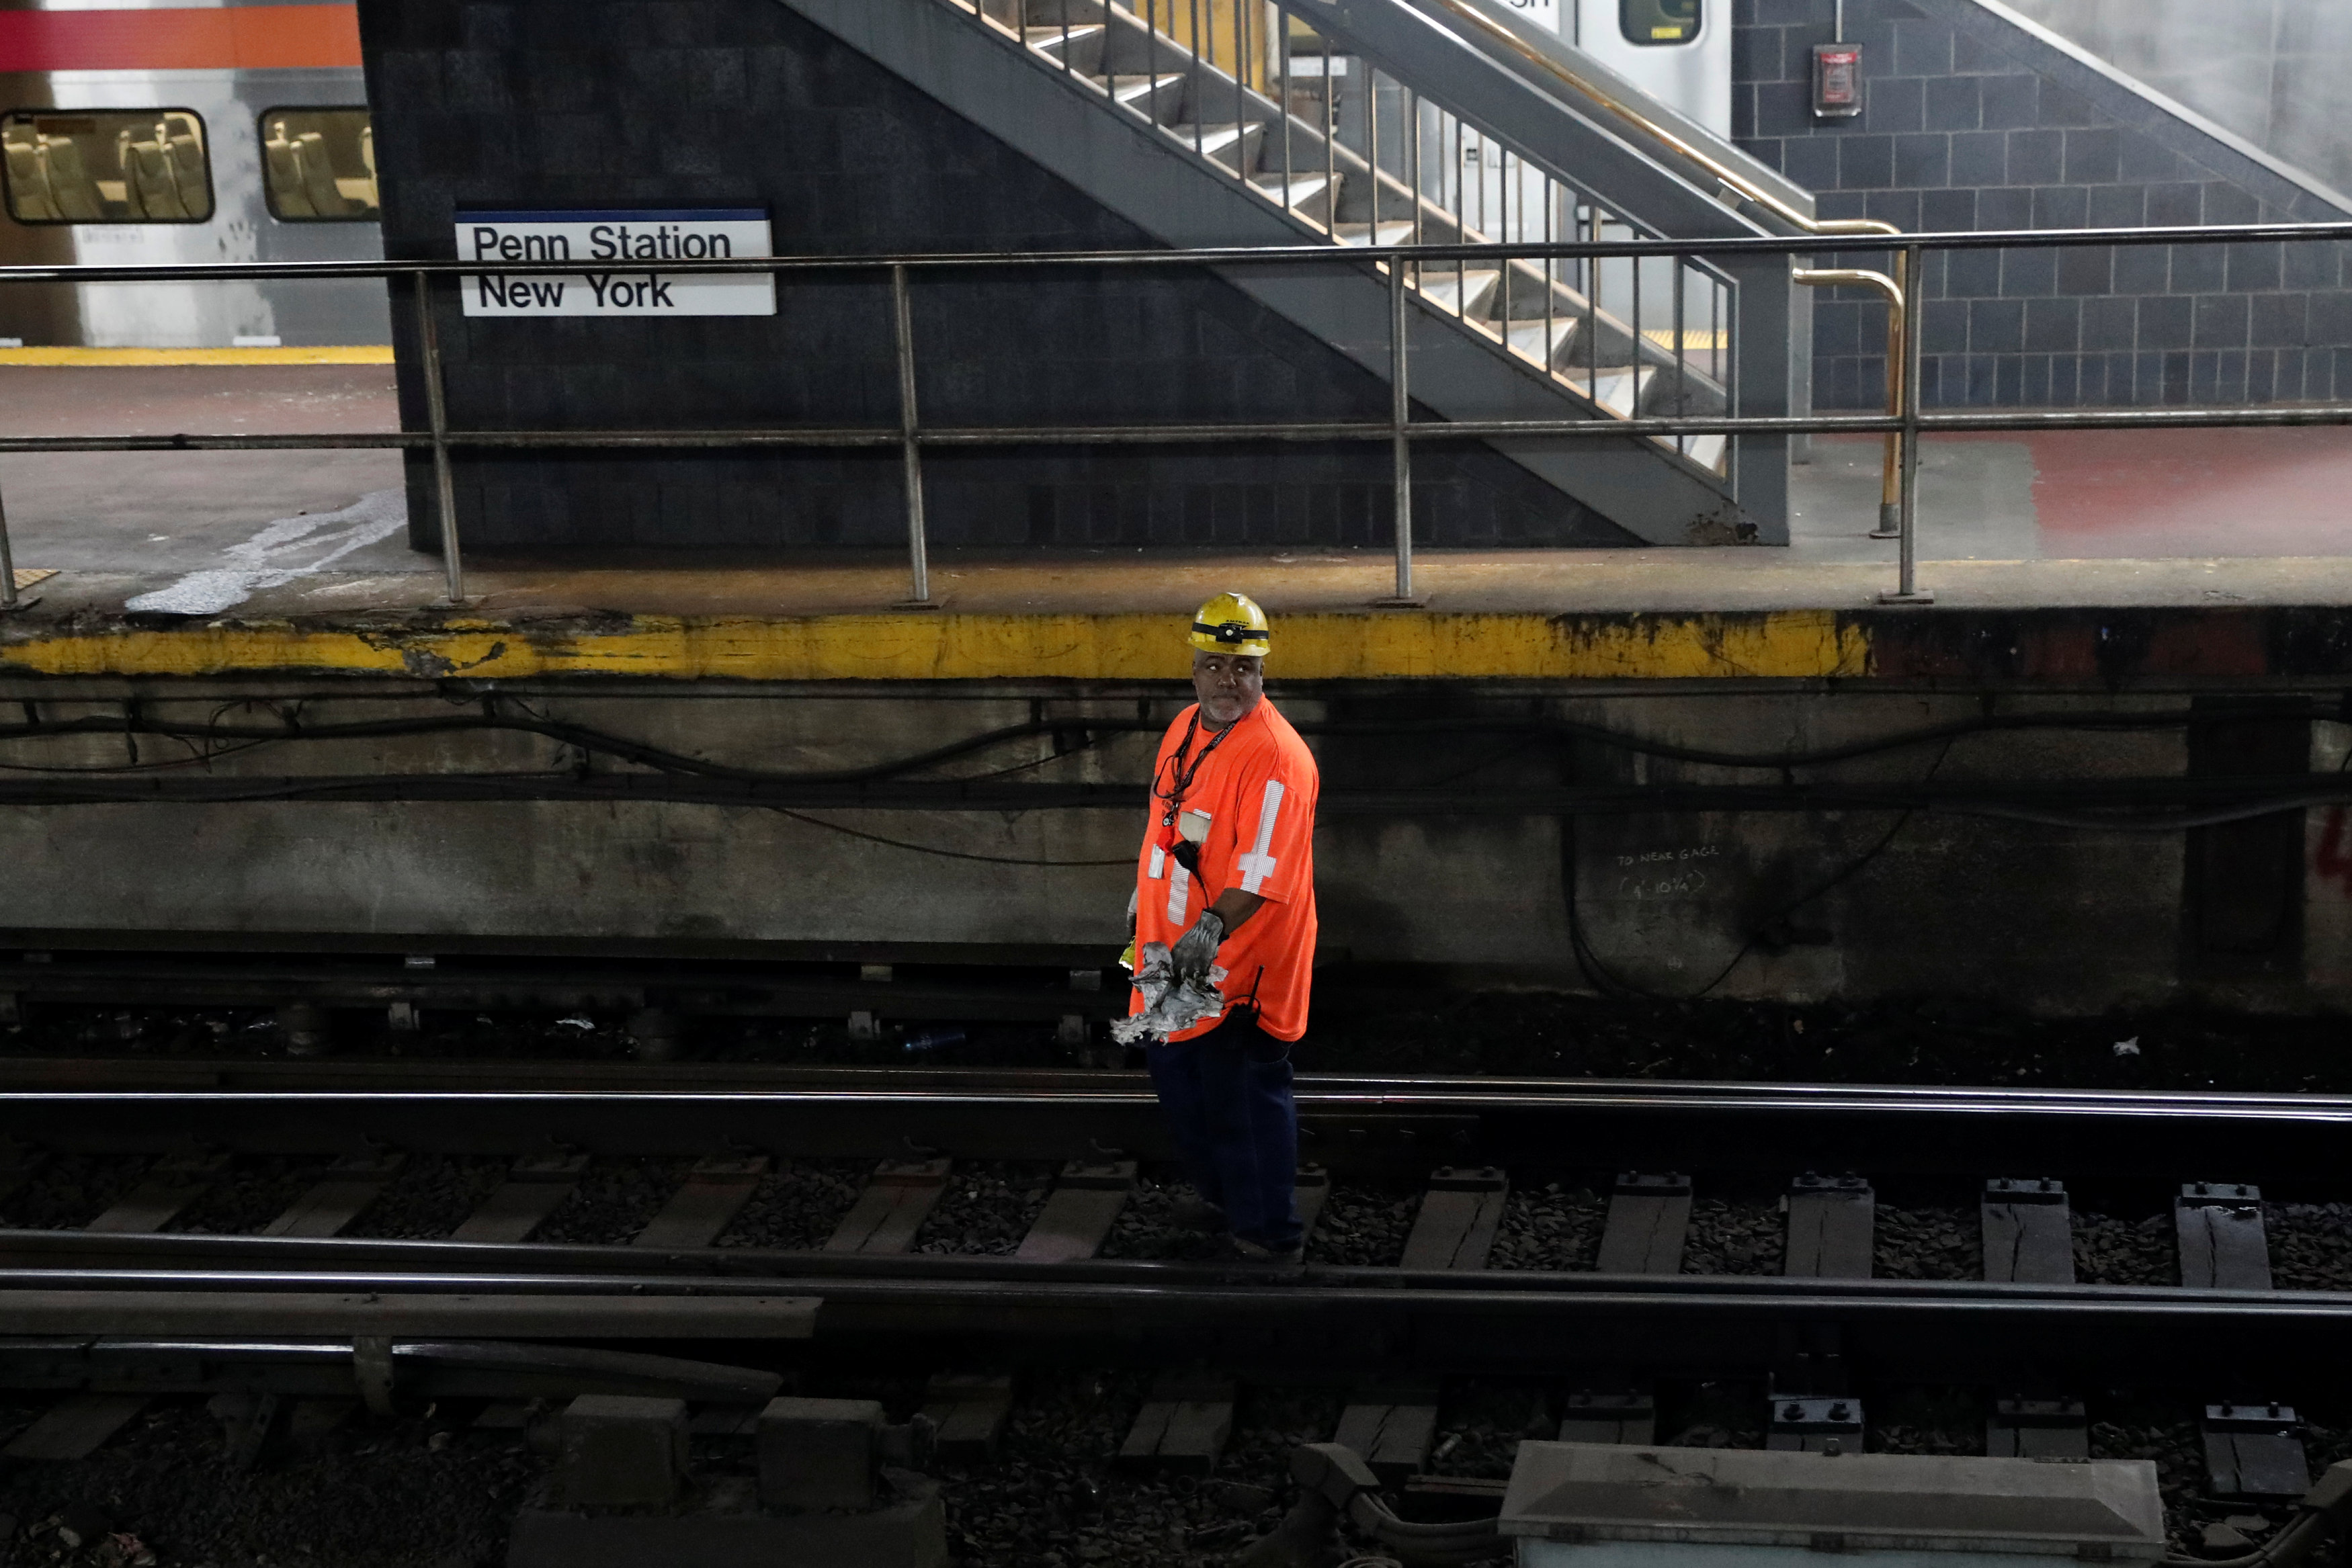 A worker walks on tracks inside New York City's Pennsylvania Station on April 27, 2017. (REUTERS/Mike Segar)